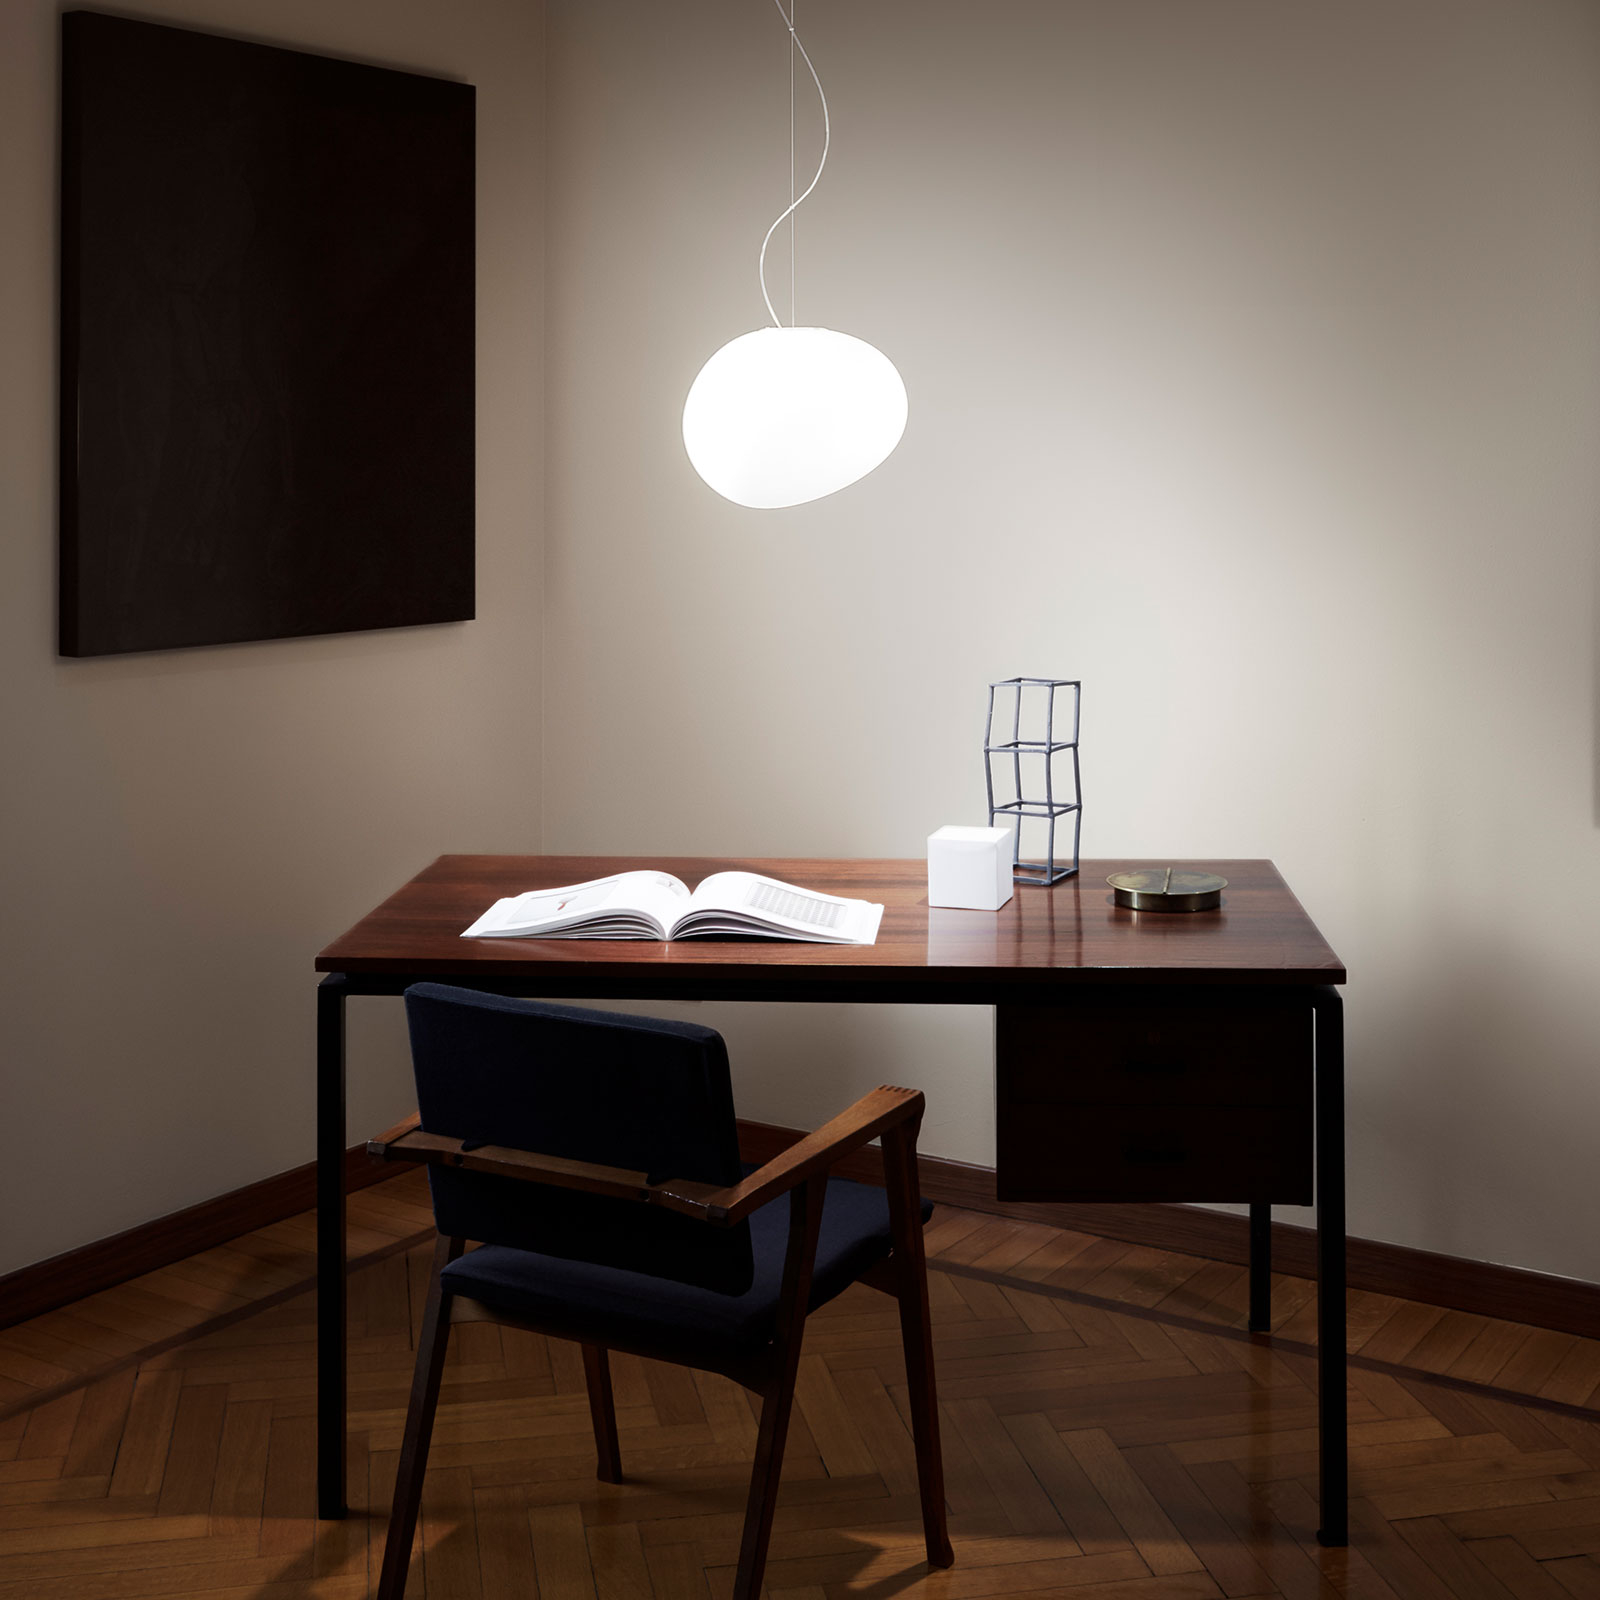 Foscarini Gregg media LED-Hängeleuchte, dimmbar